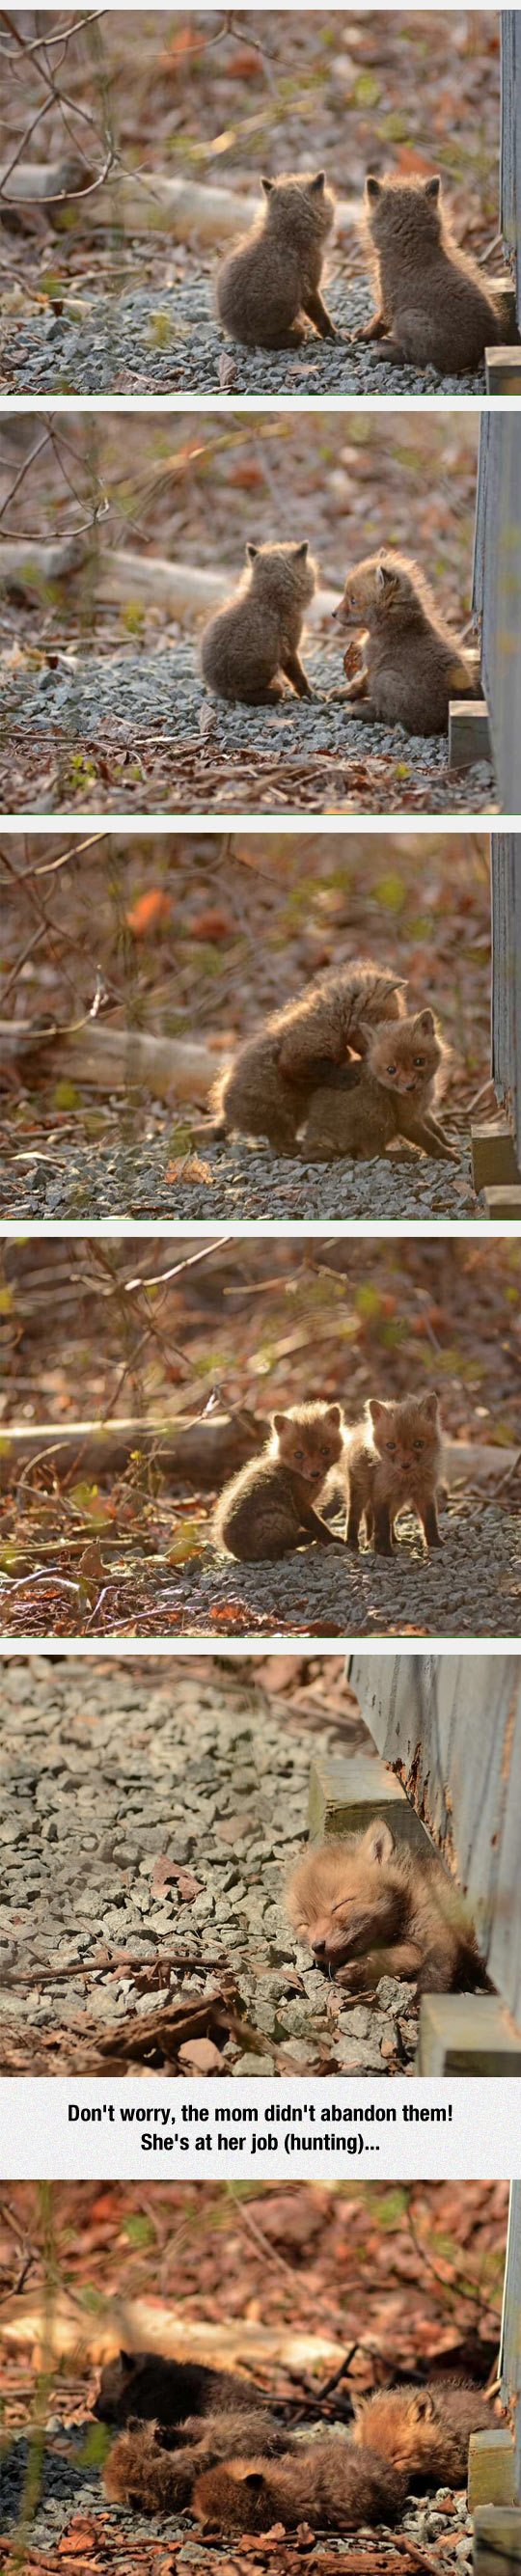 2-funny-backyard-baby-foxes-new-jersey-fall